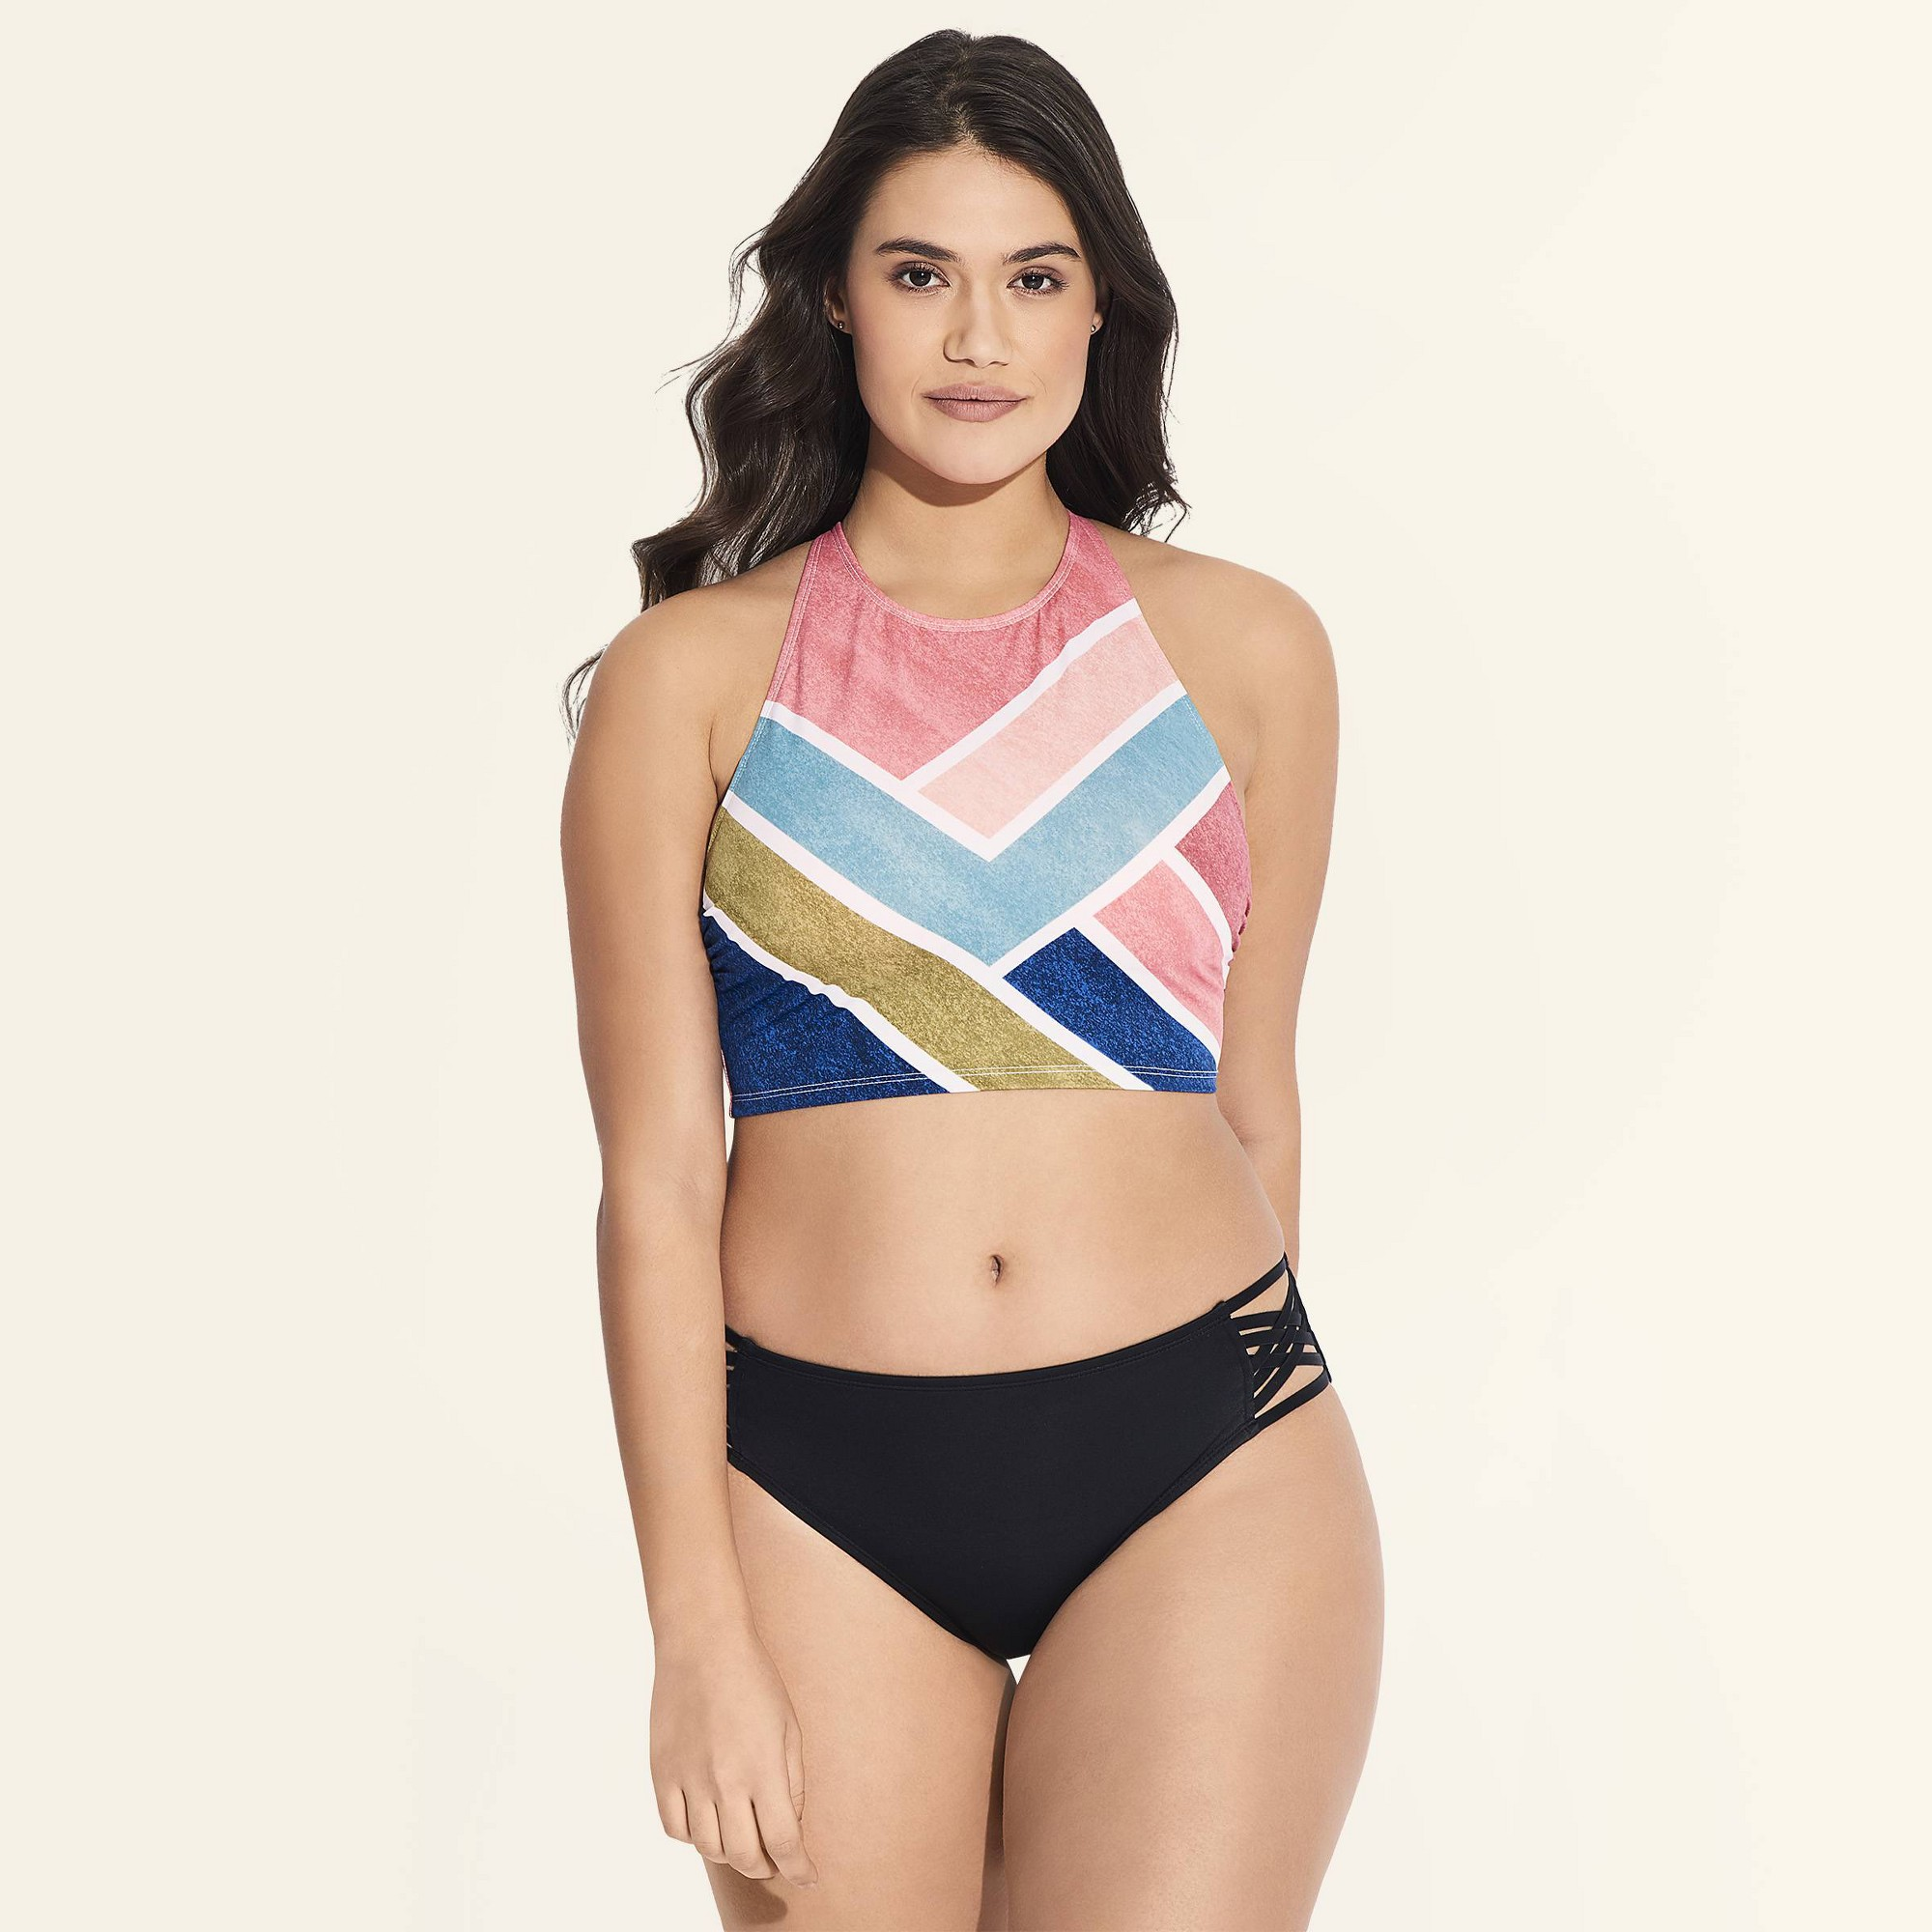 Women's Slimming Control High Neck Lace-Up Bikini Top - Beach Betty by Miracle Brands Stripe L, Size: Large, MultiColored